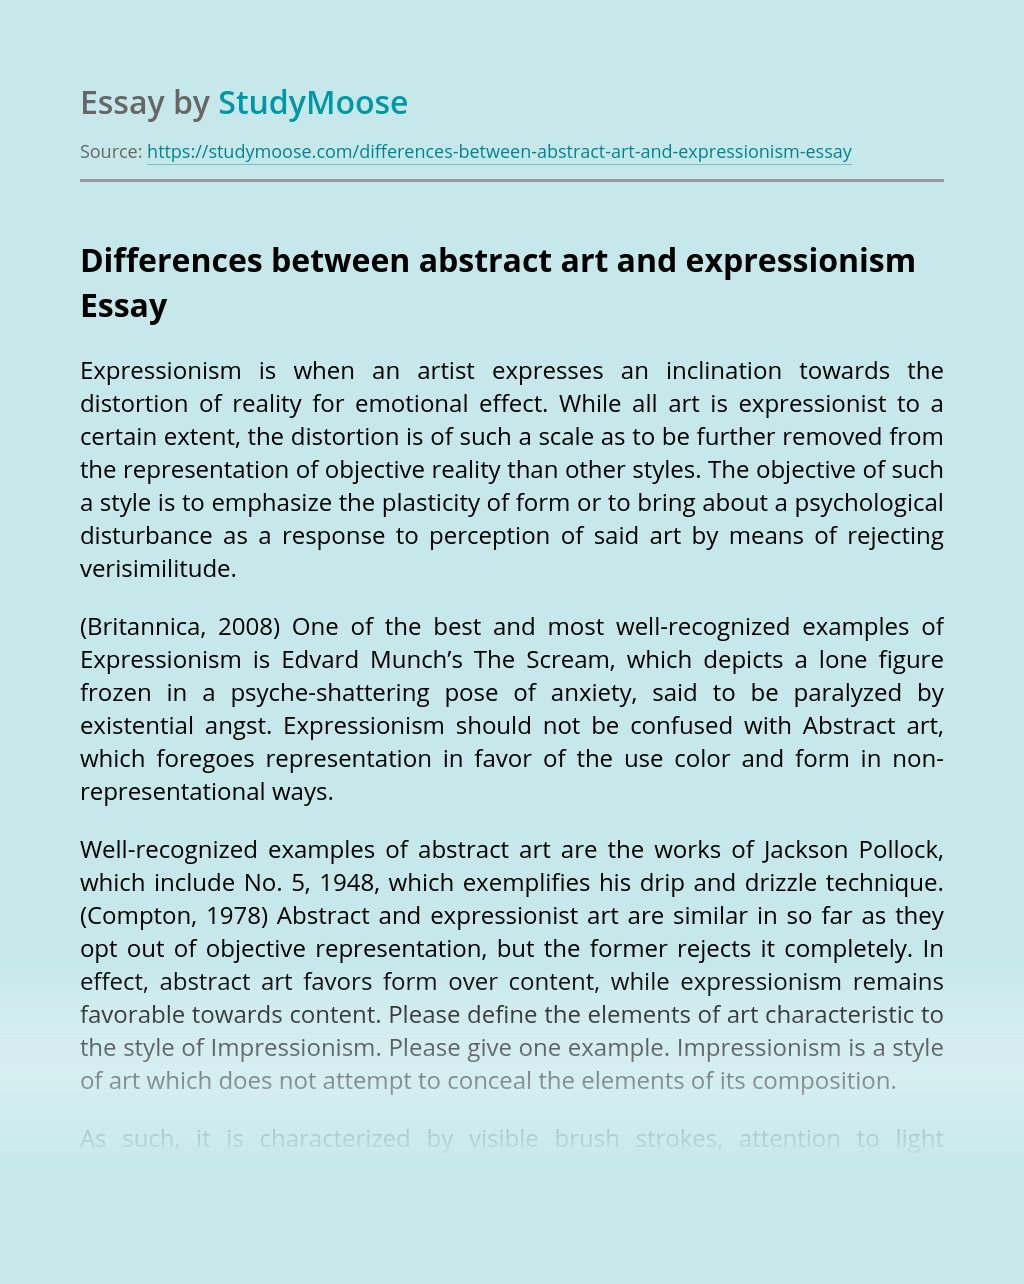 Differences between abstract art and expressionism